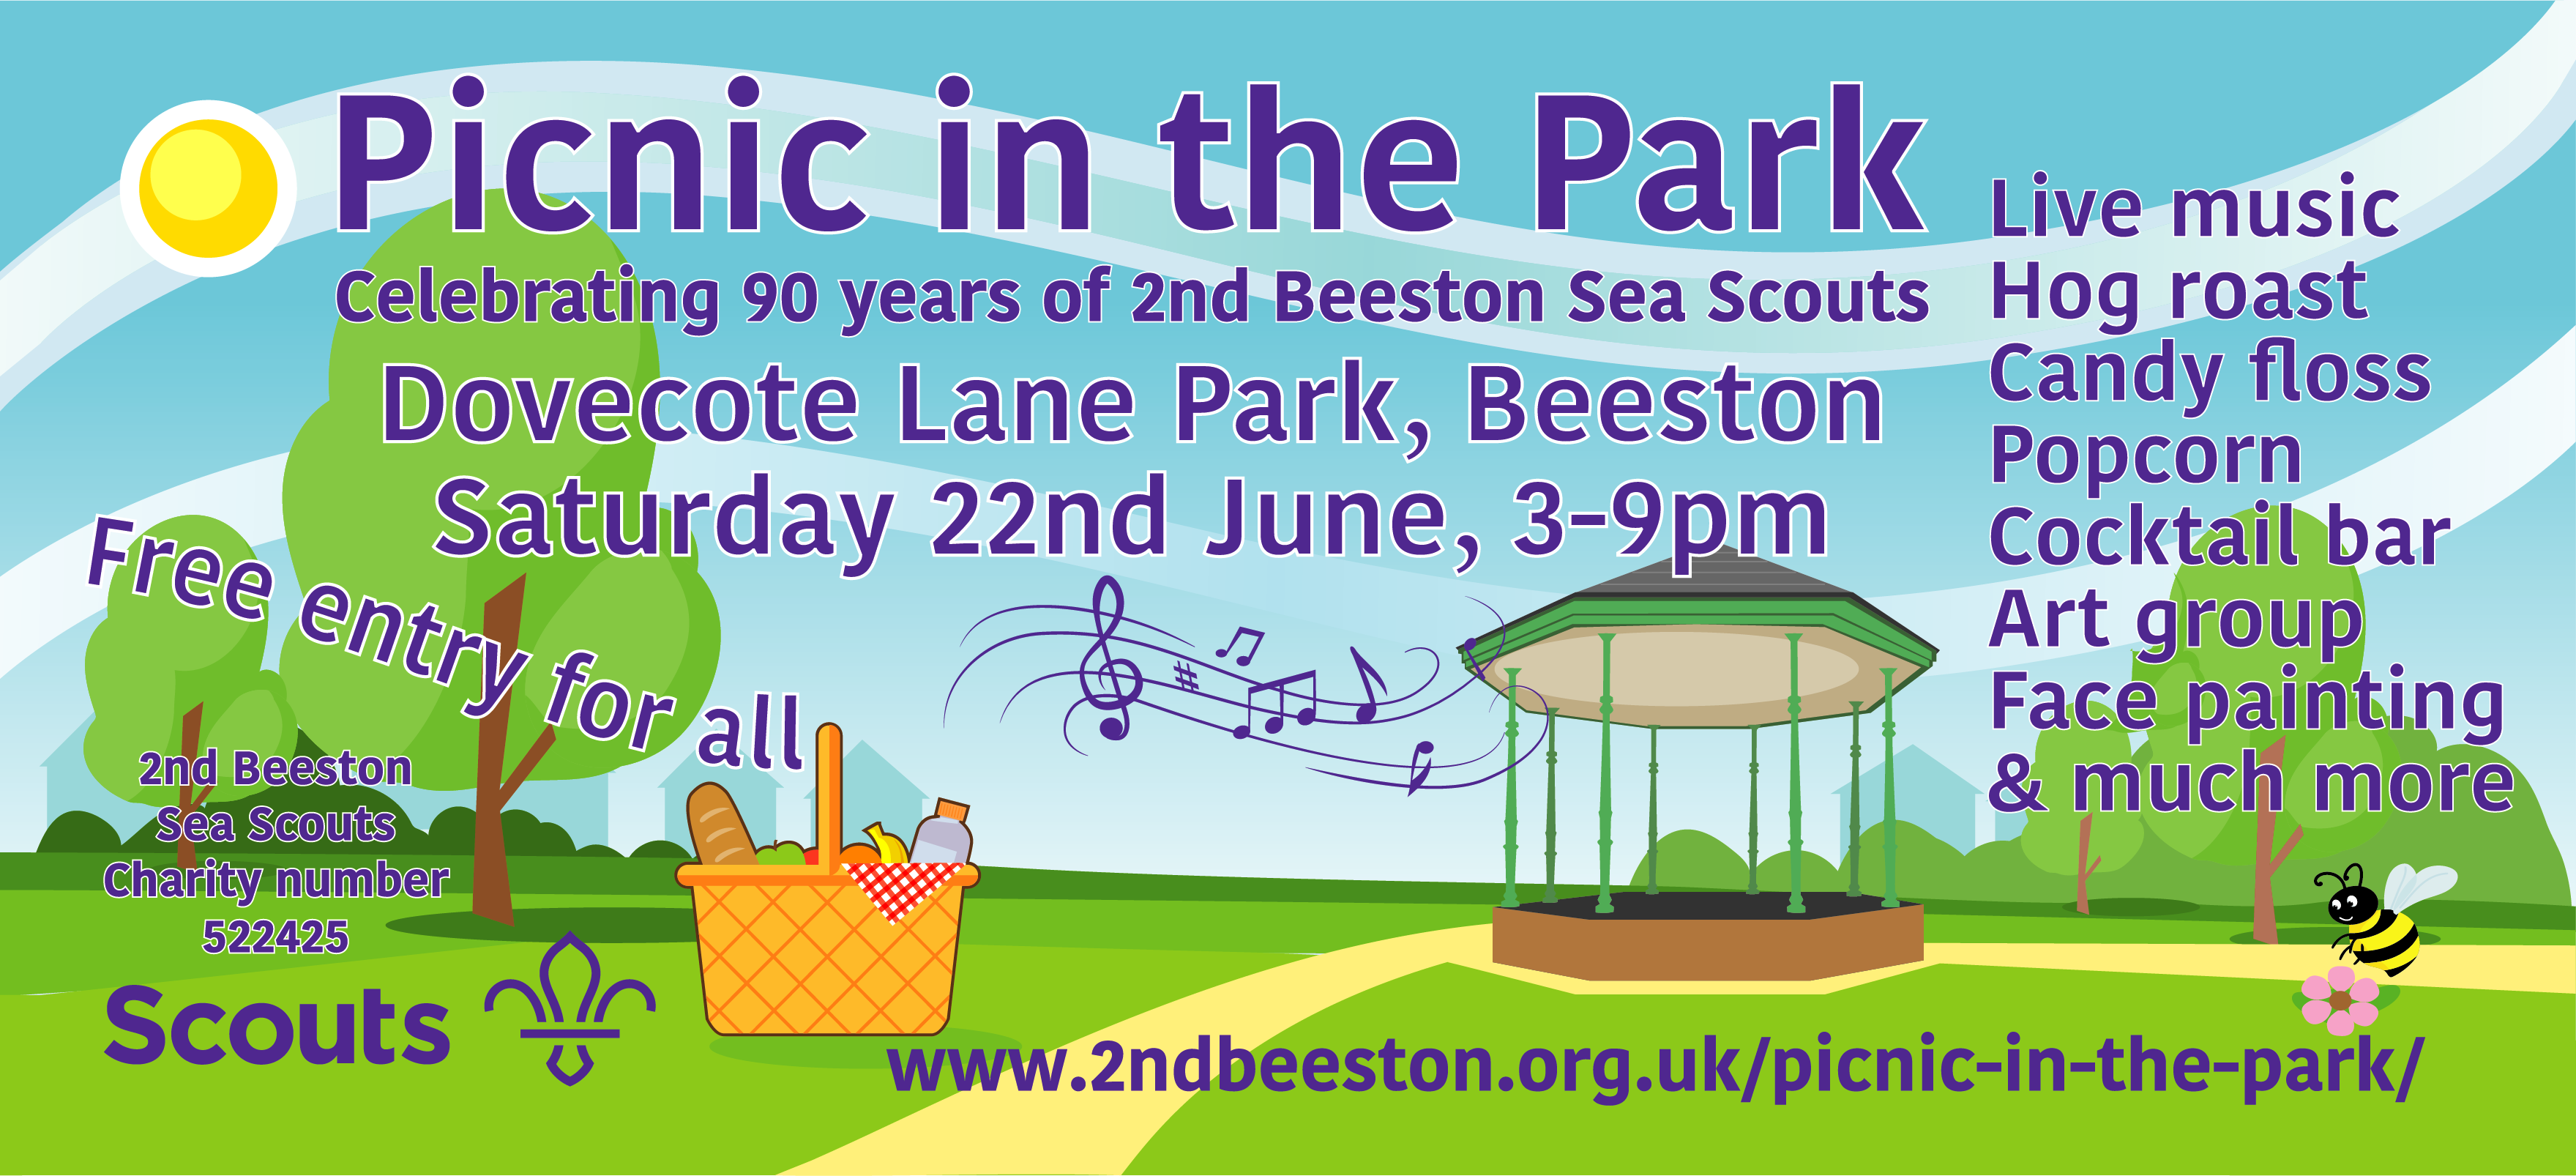 Beeston Picnic in the Park event.